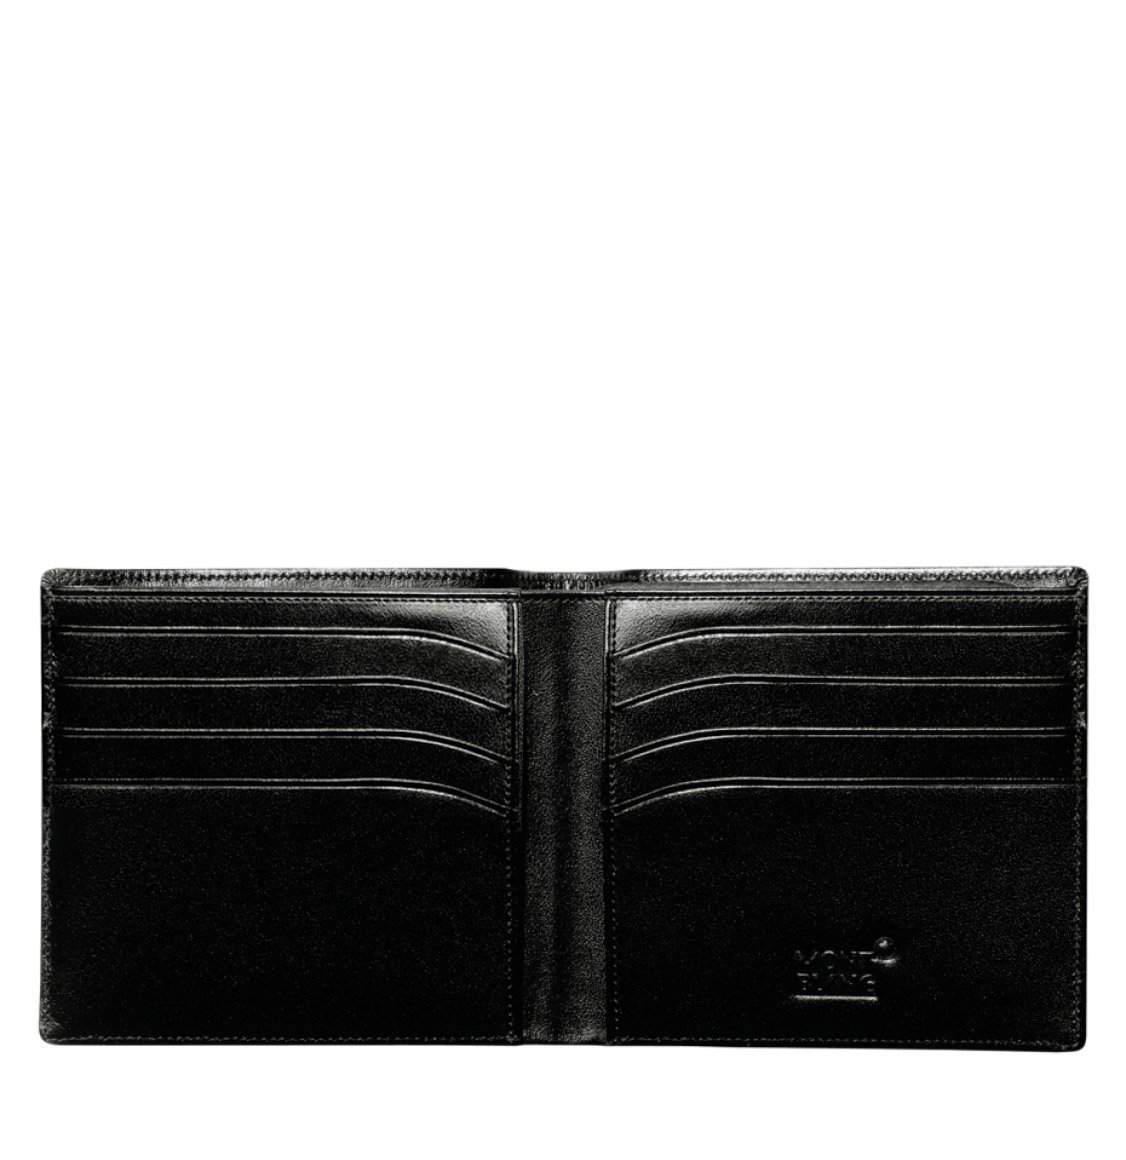 Montblanc Leather Wallet 8 Credit Cards